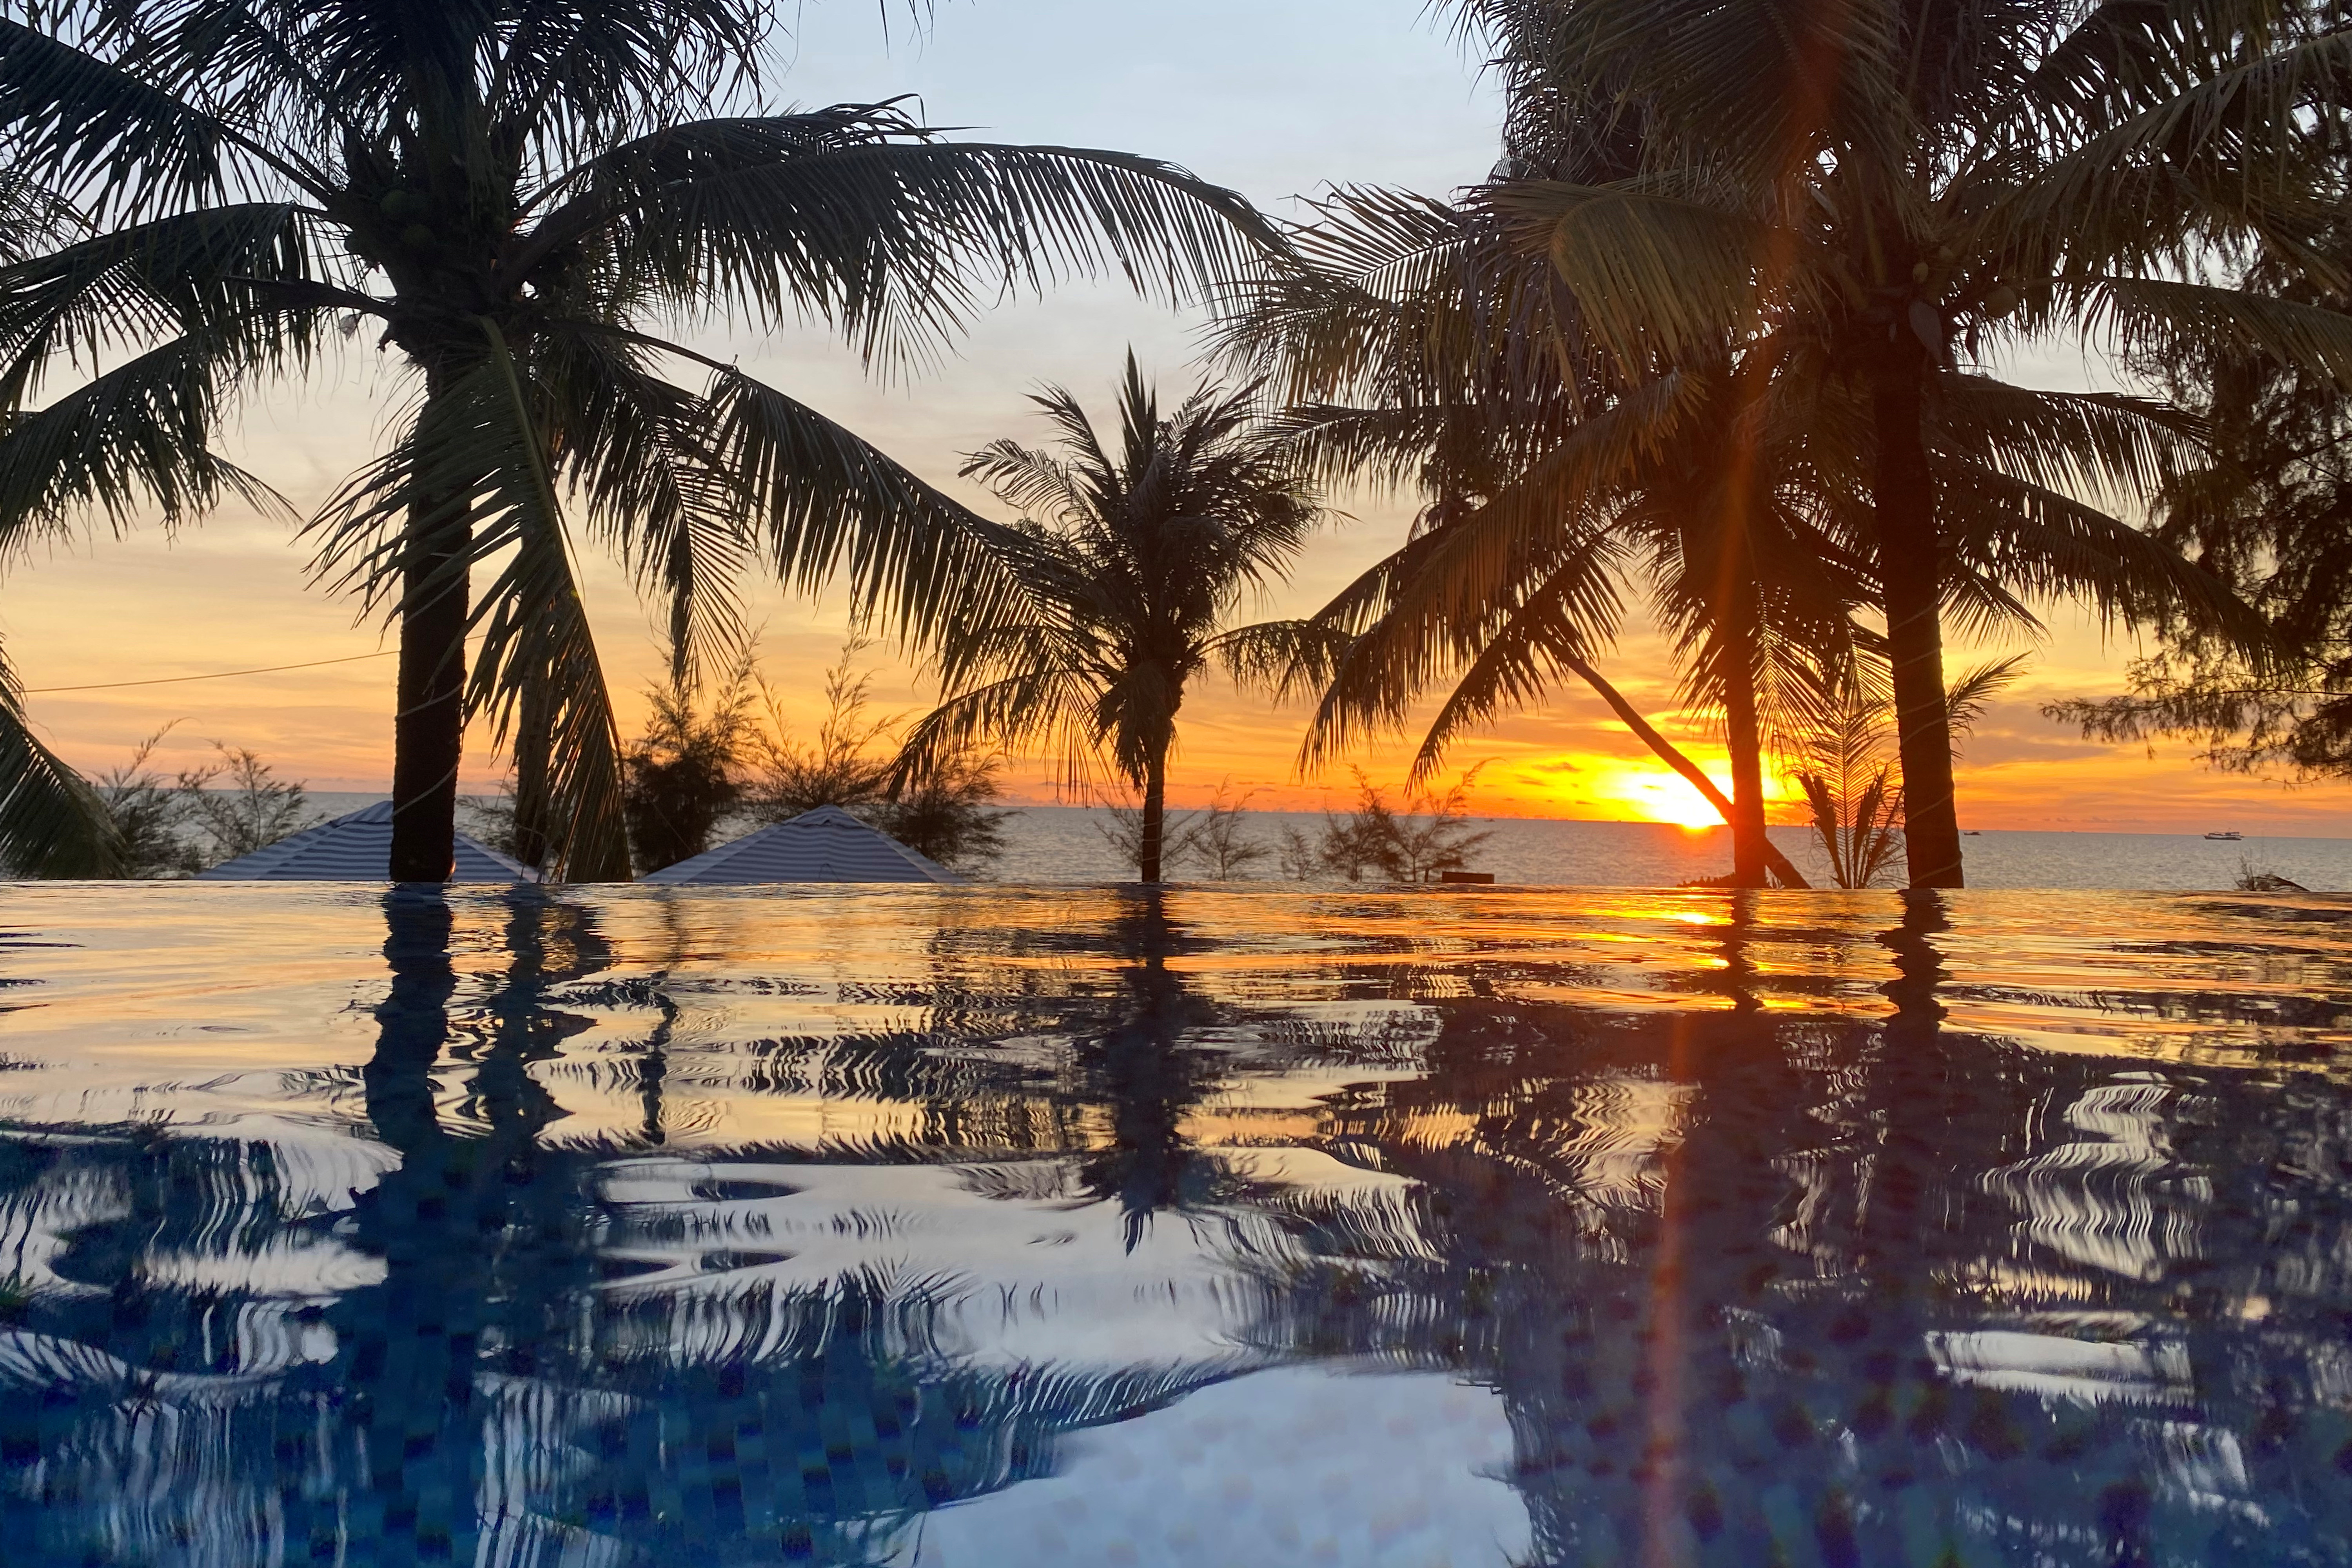 A sunset is seen in a resort after the Vietnamese government eased the lockdown following the coronavirus disease (COVID-19) outbreak, in Phu Quoc island, Vietnam May 8, 2020. REUTERS/James Pearson